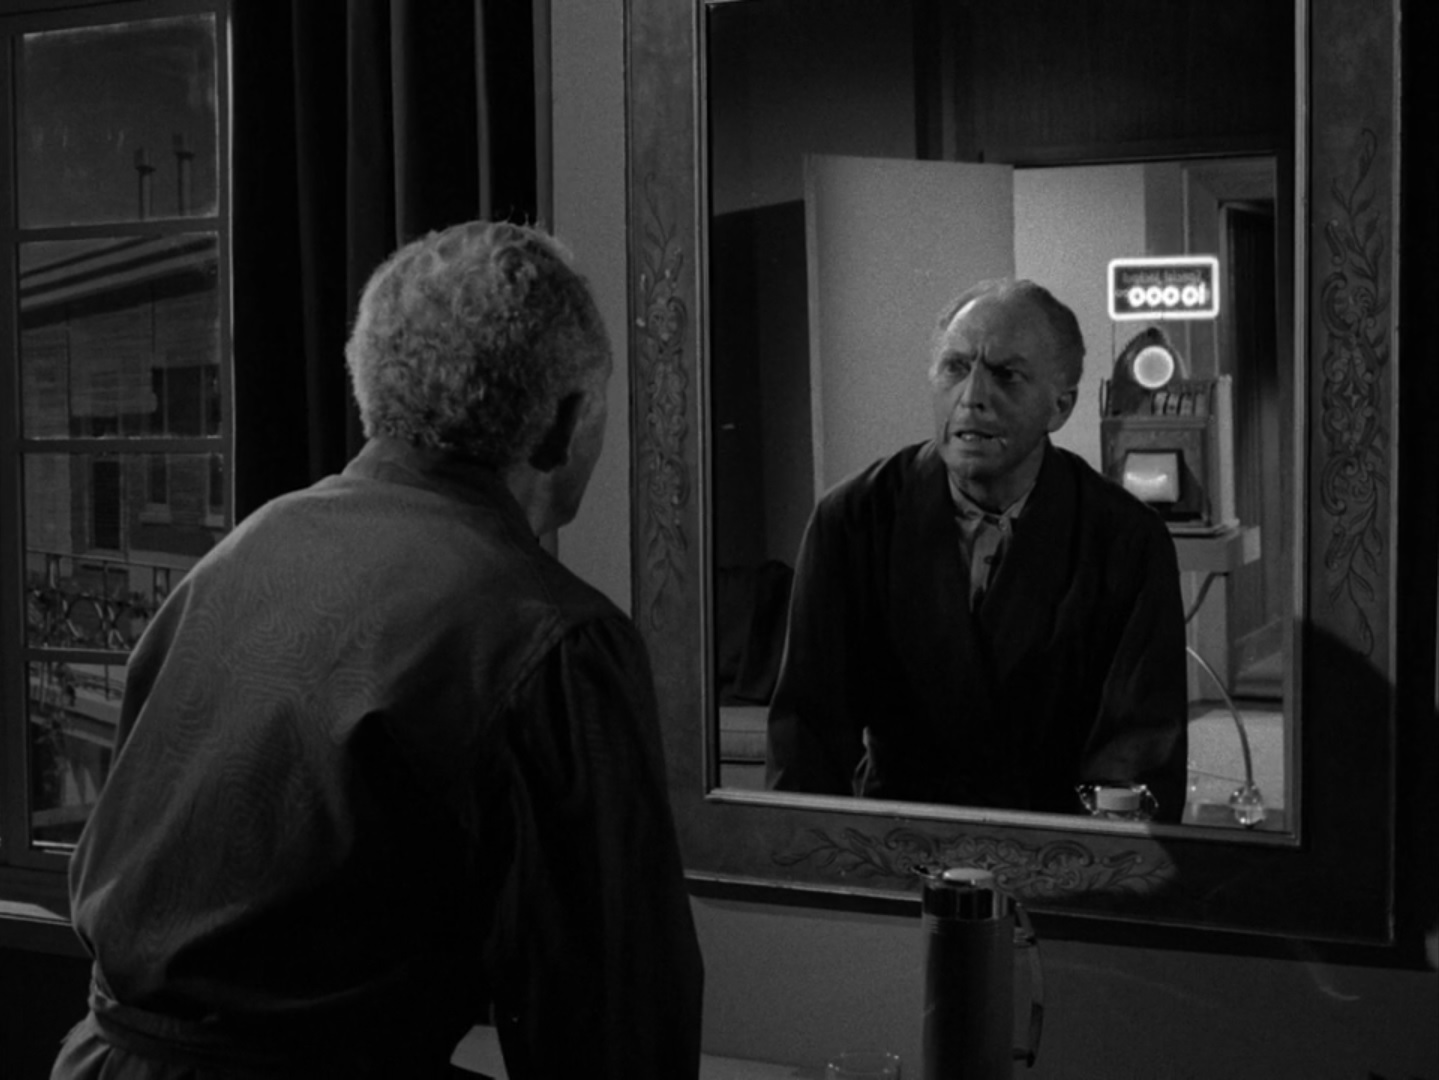 twilight zone thesis Especially remarkable is the level of nuance employed by beaumont while exploring his central thesis twilight zone the twilight zone episode 41: the howling.